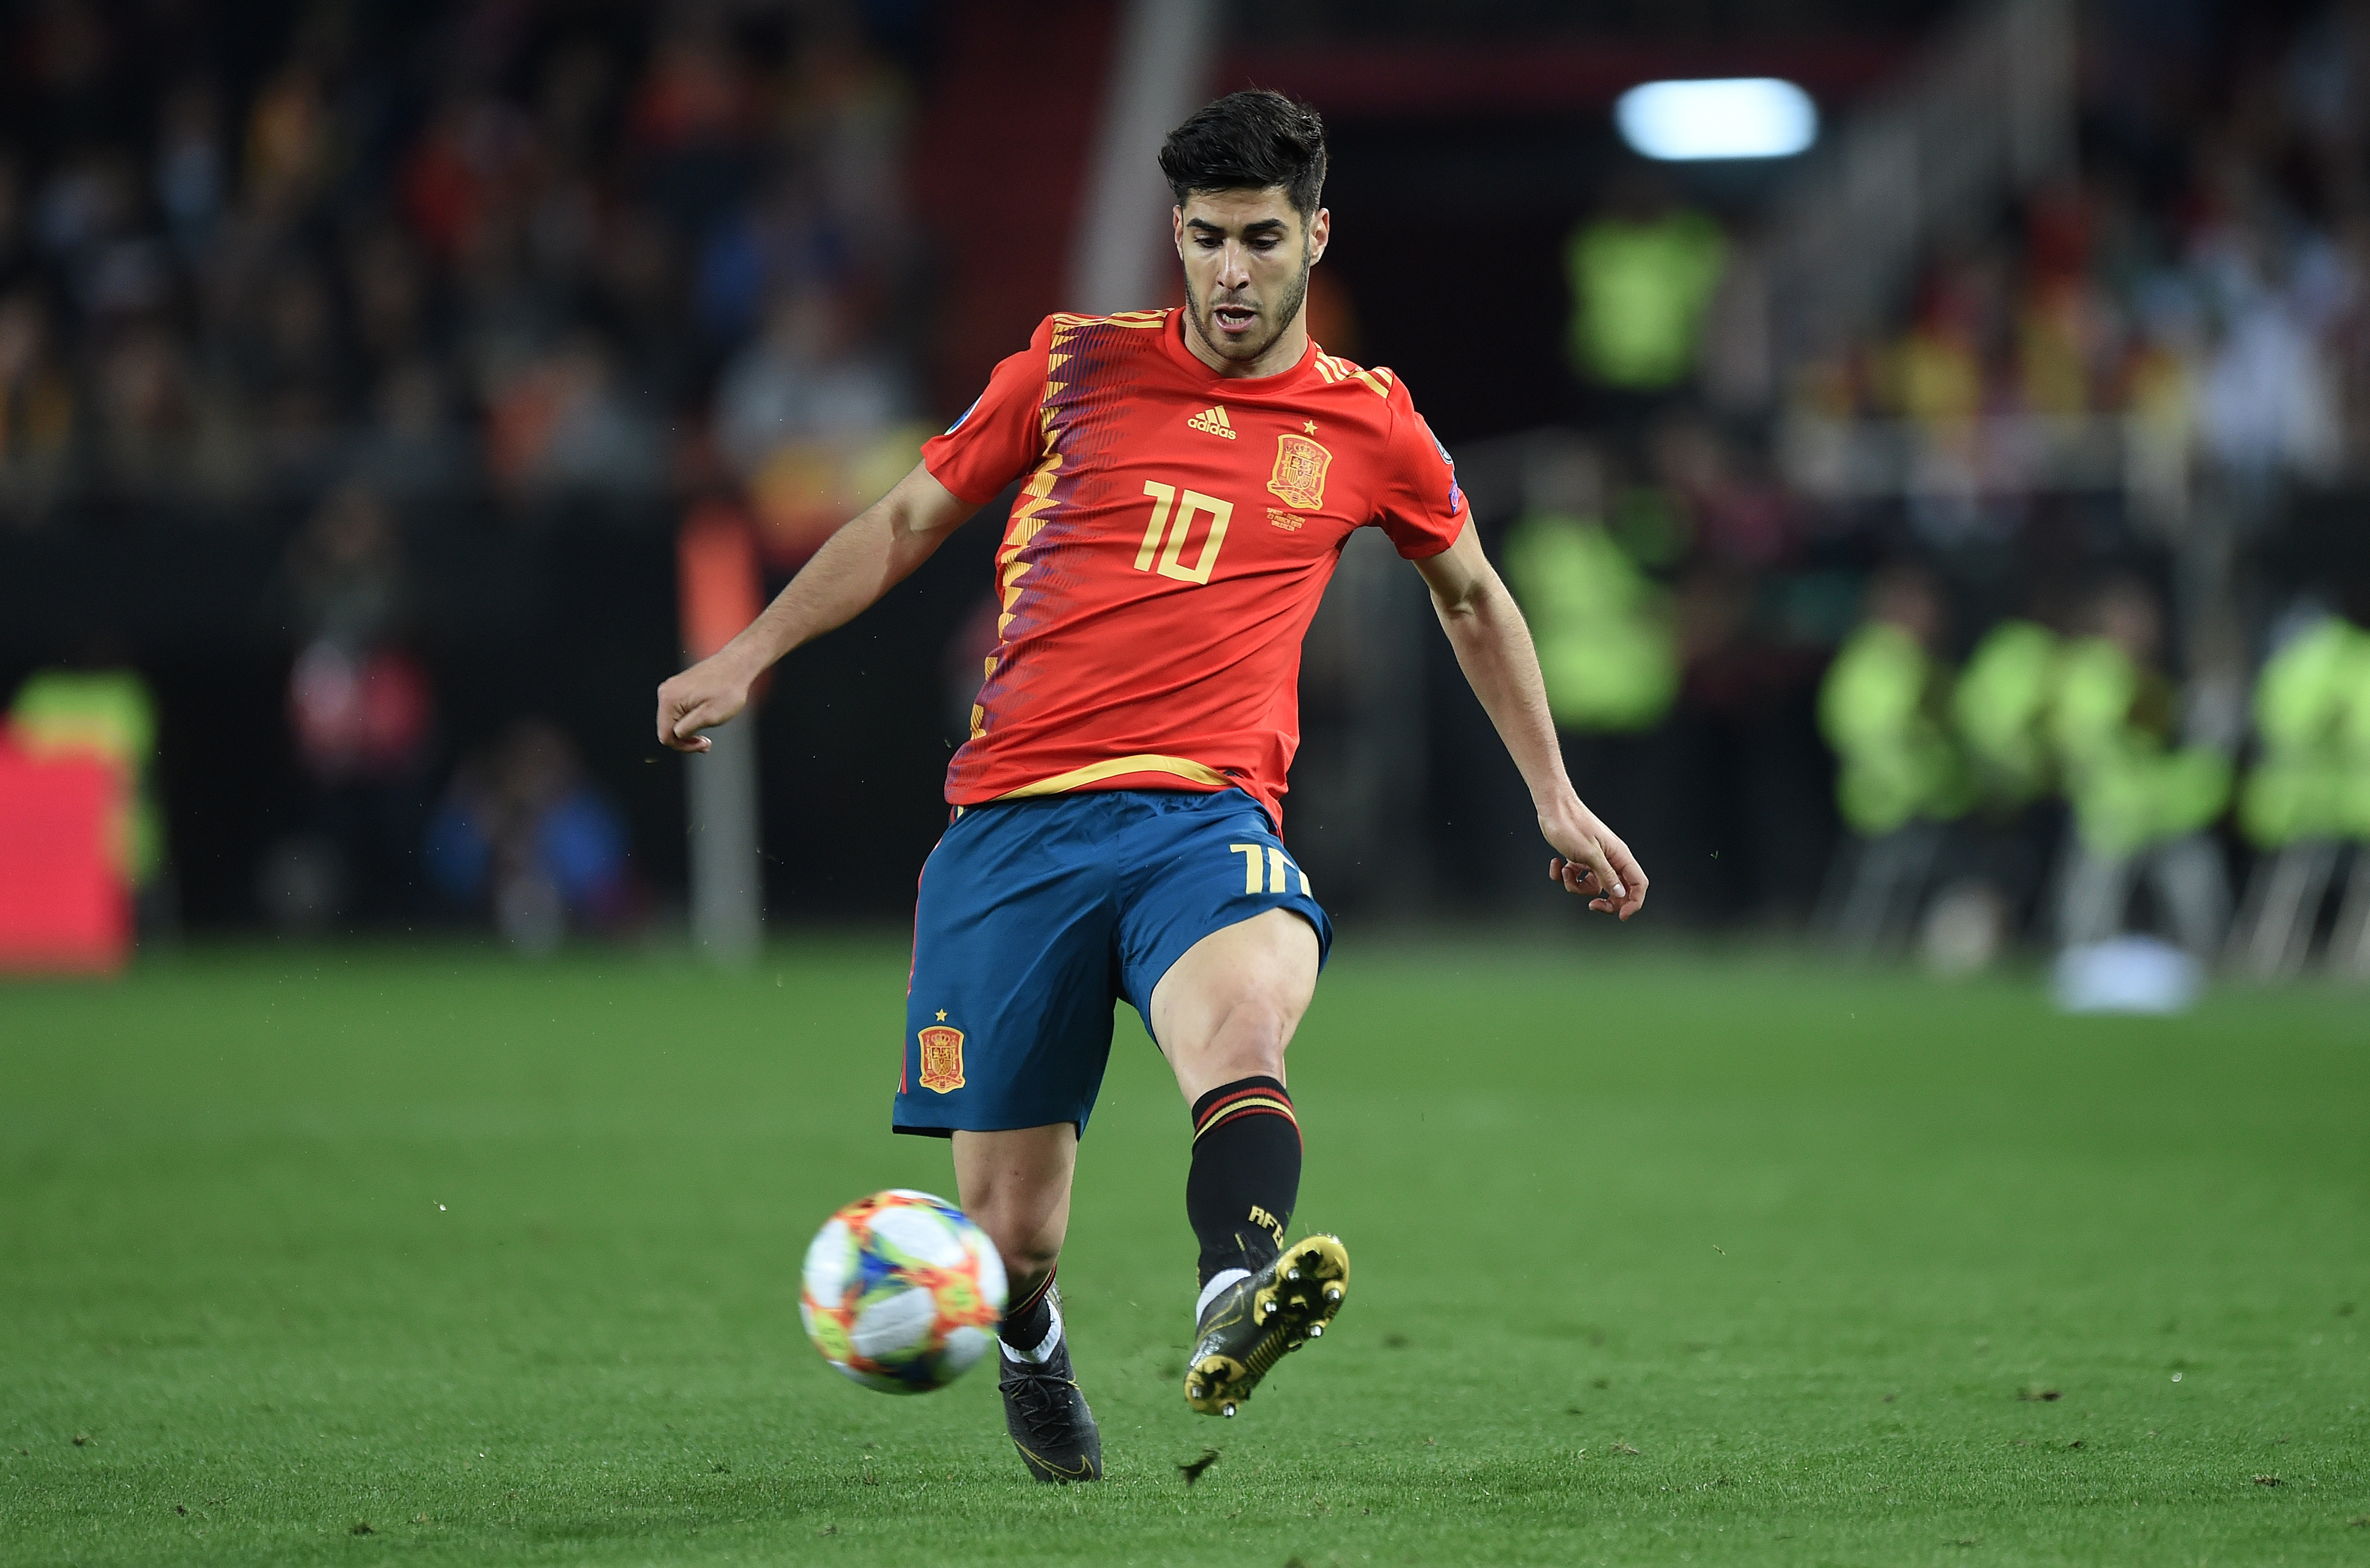 Asensio has struggled for form in recent times (Photo by Denis Doyle/Getty Images)